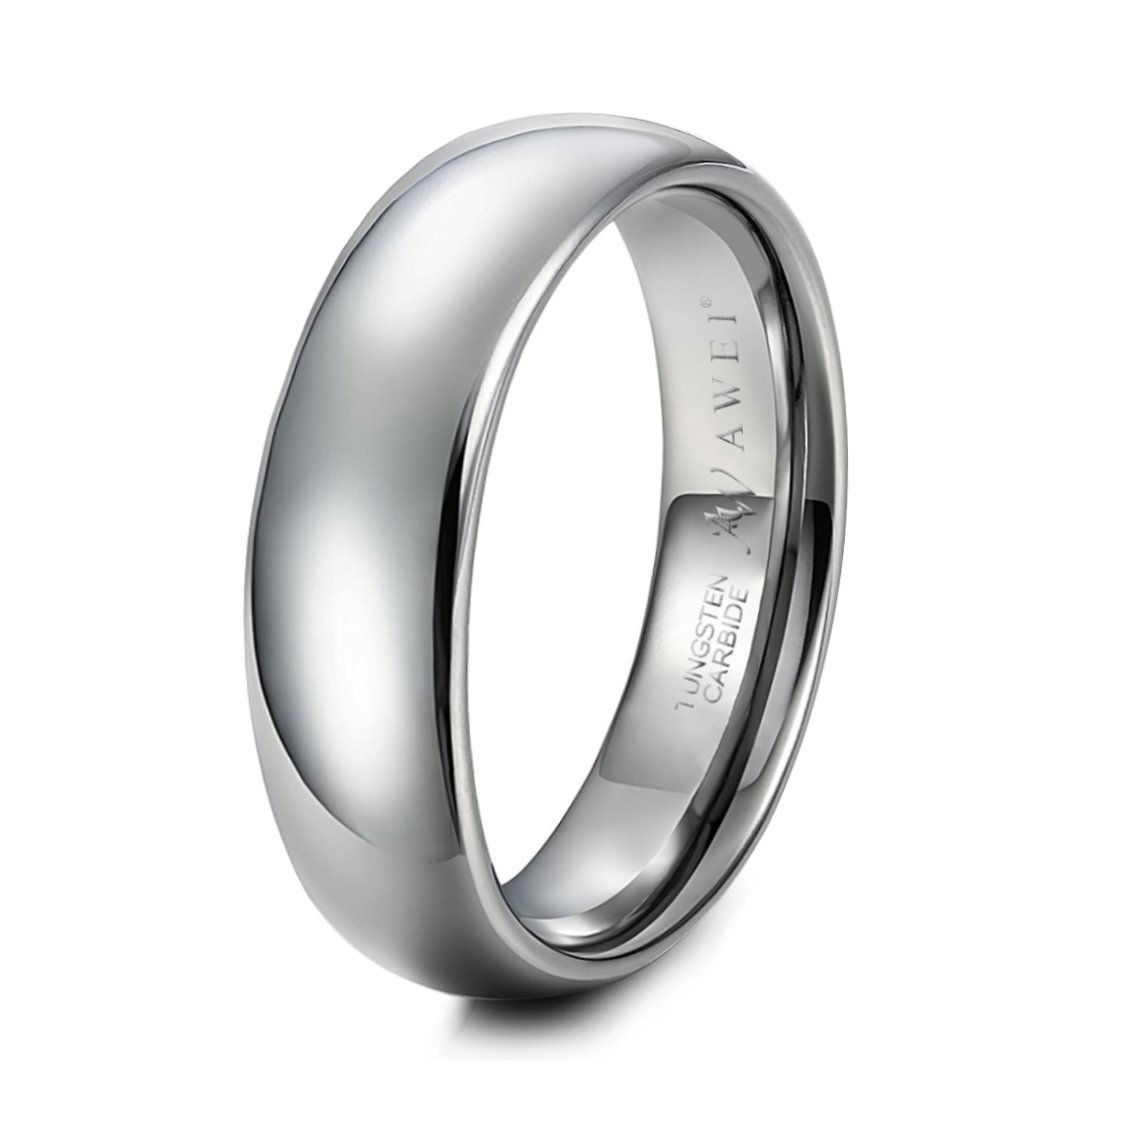 AWEI Wide 8mm Tungsten Ring Band Silver Comfort Fit Classic Wedding Dome Polished Size 5-15